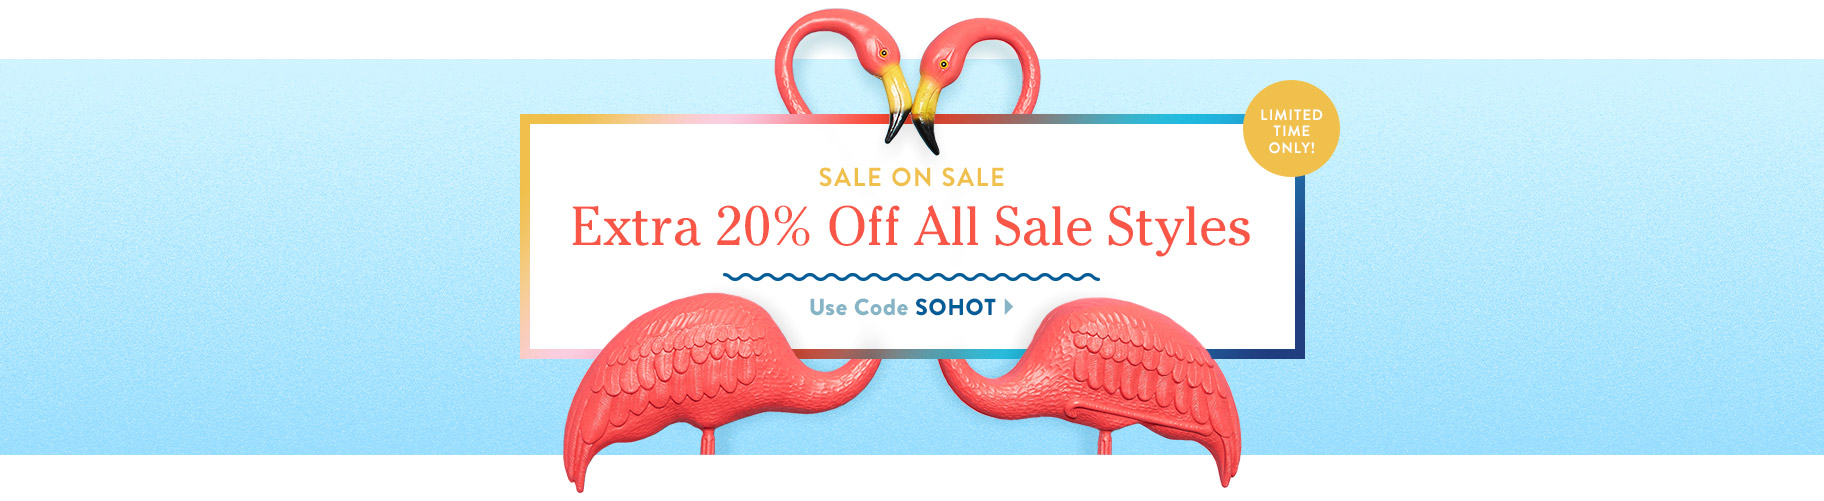 Sale on Sale. Extra 20% Off All Sale Items. Use Code SOHOT.